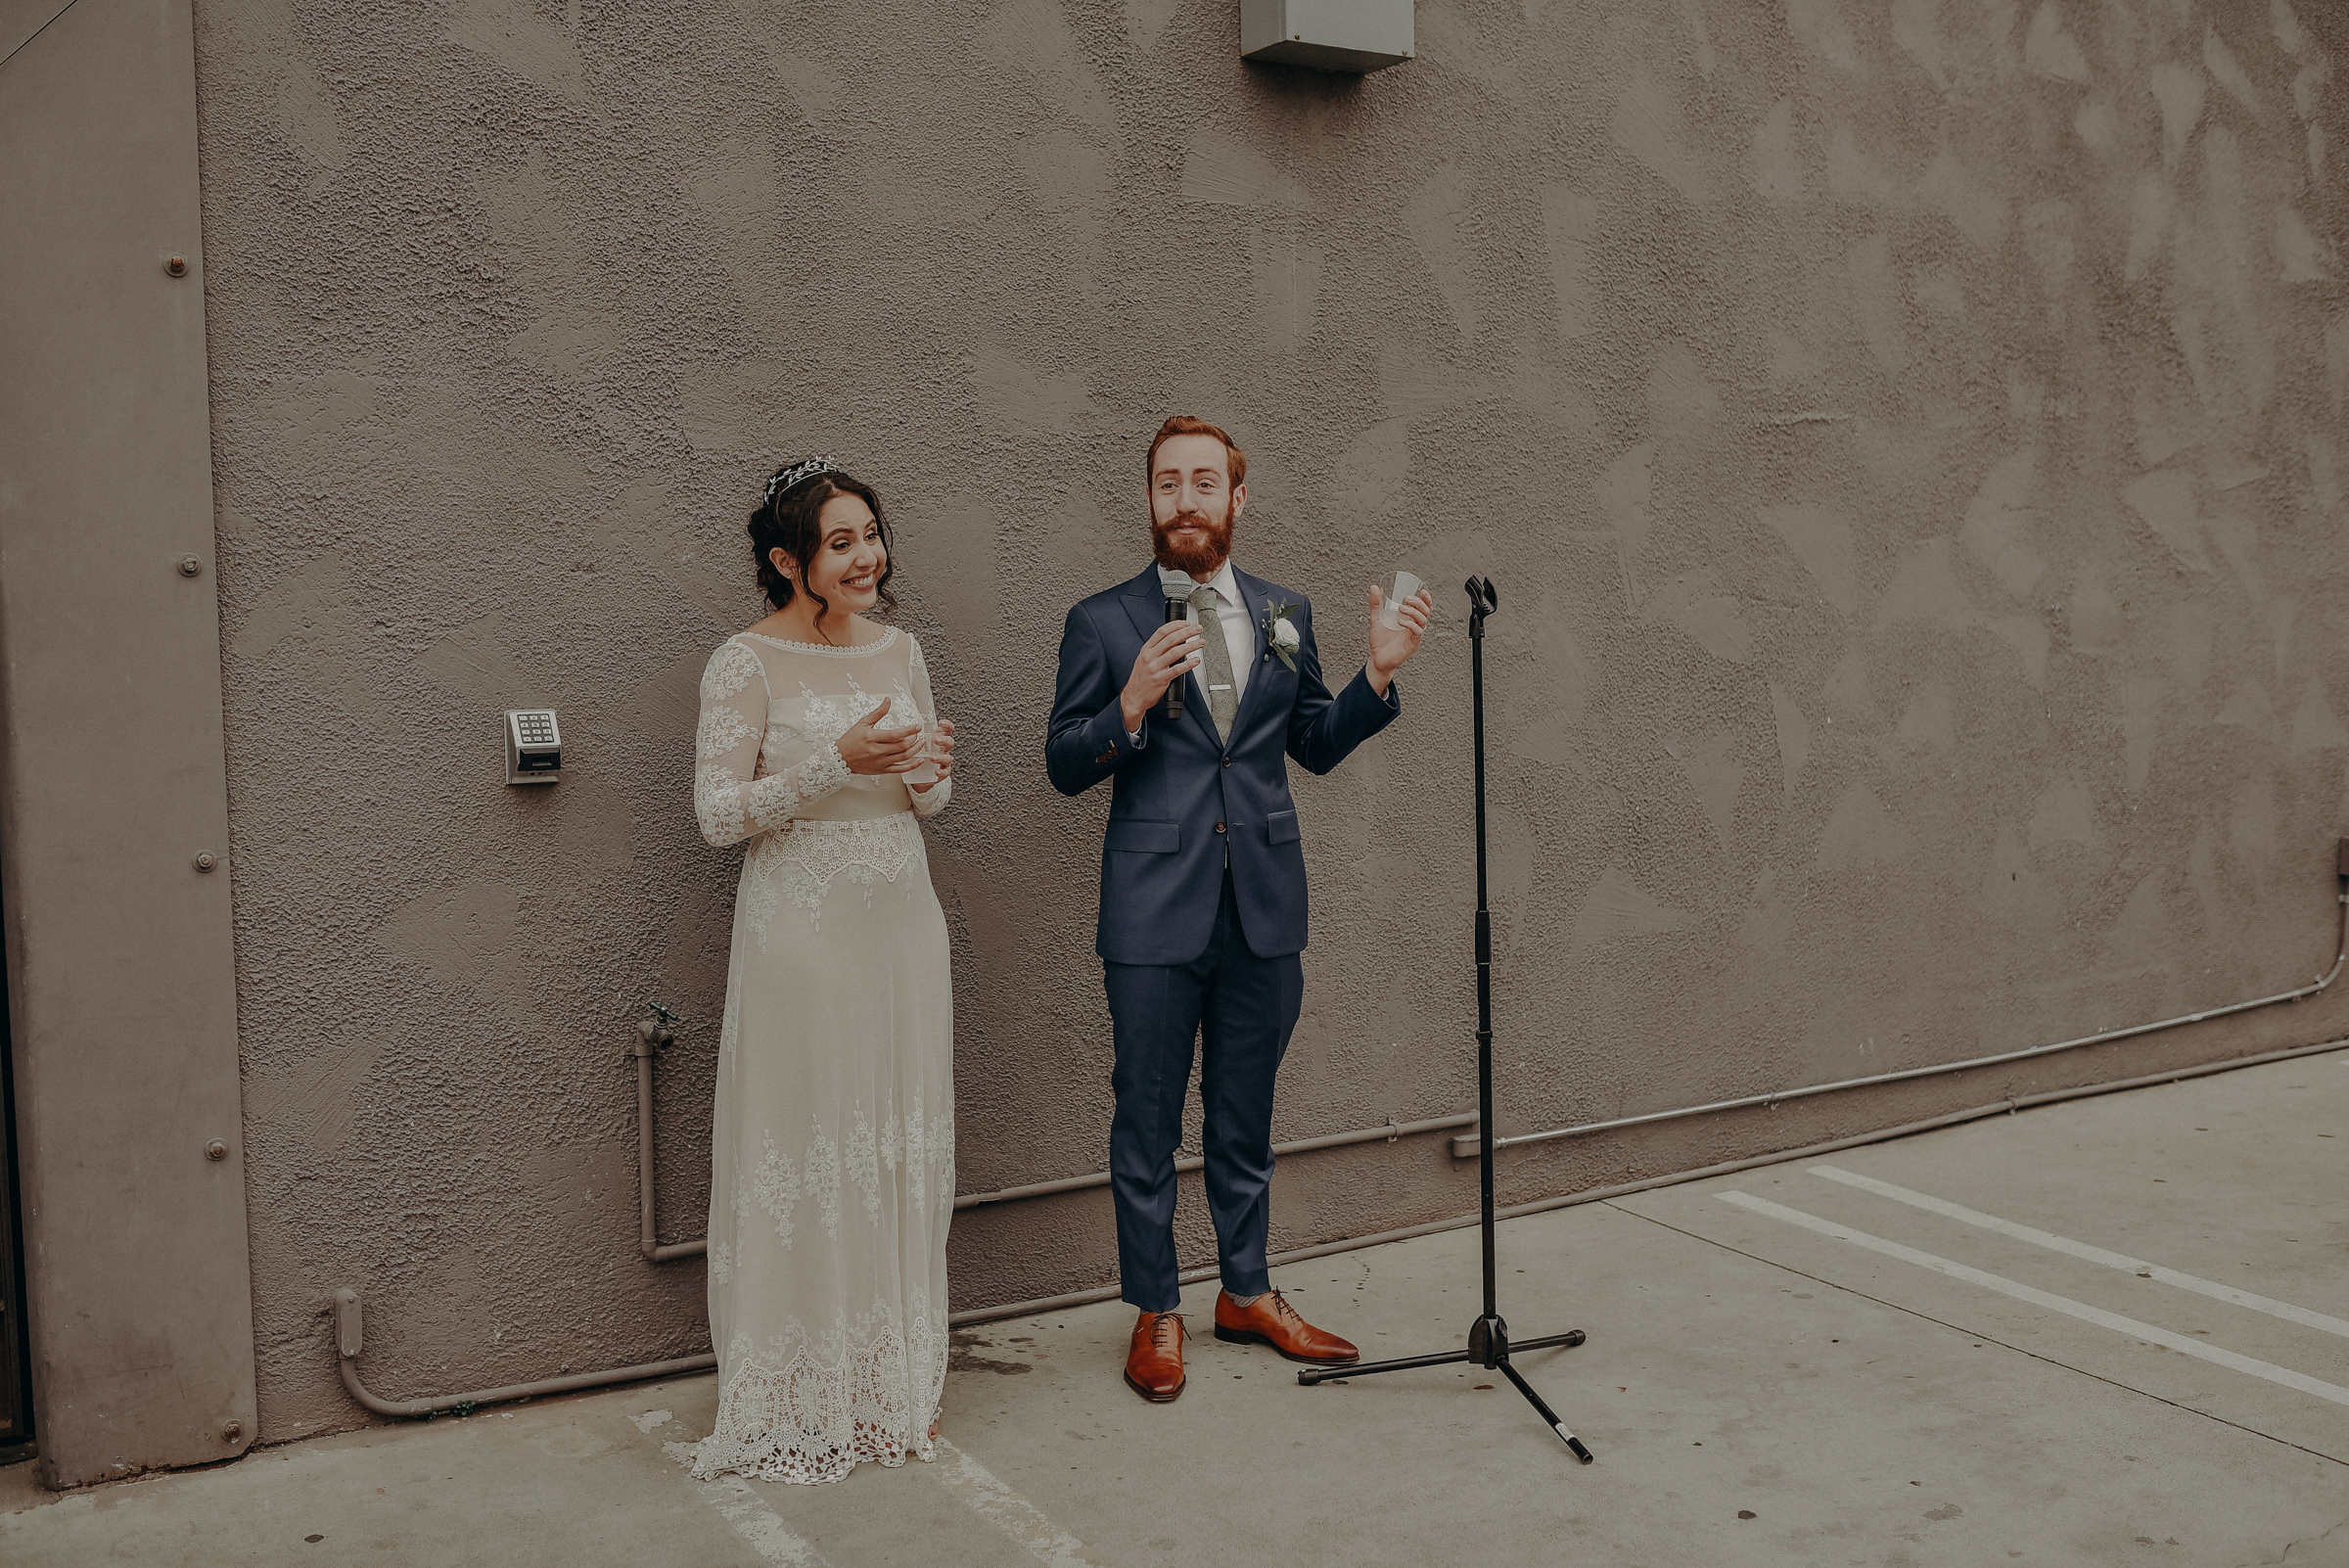 Isaiah + Taylor Photography - The Unique Space Wedding, Los Angeles Wedding Photography 129.jpg